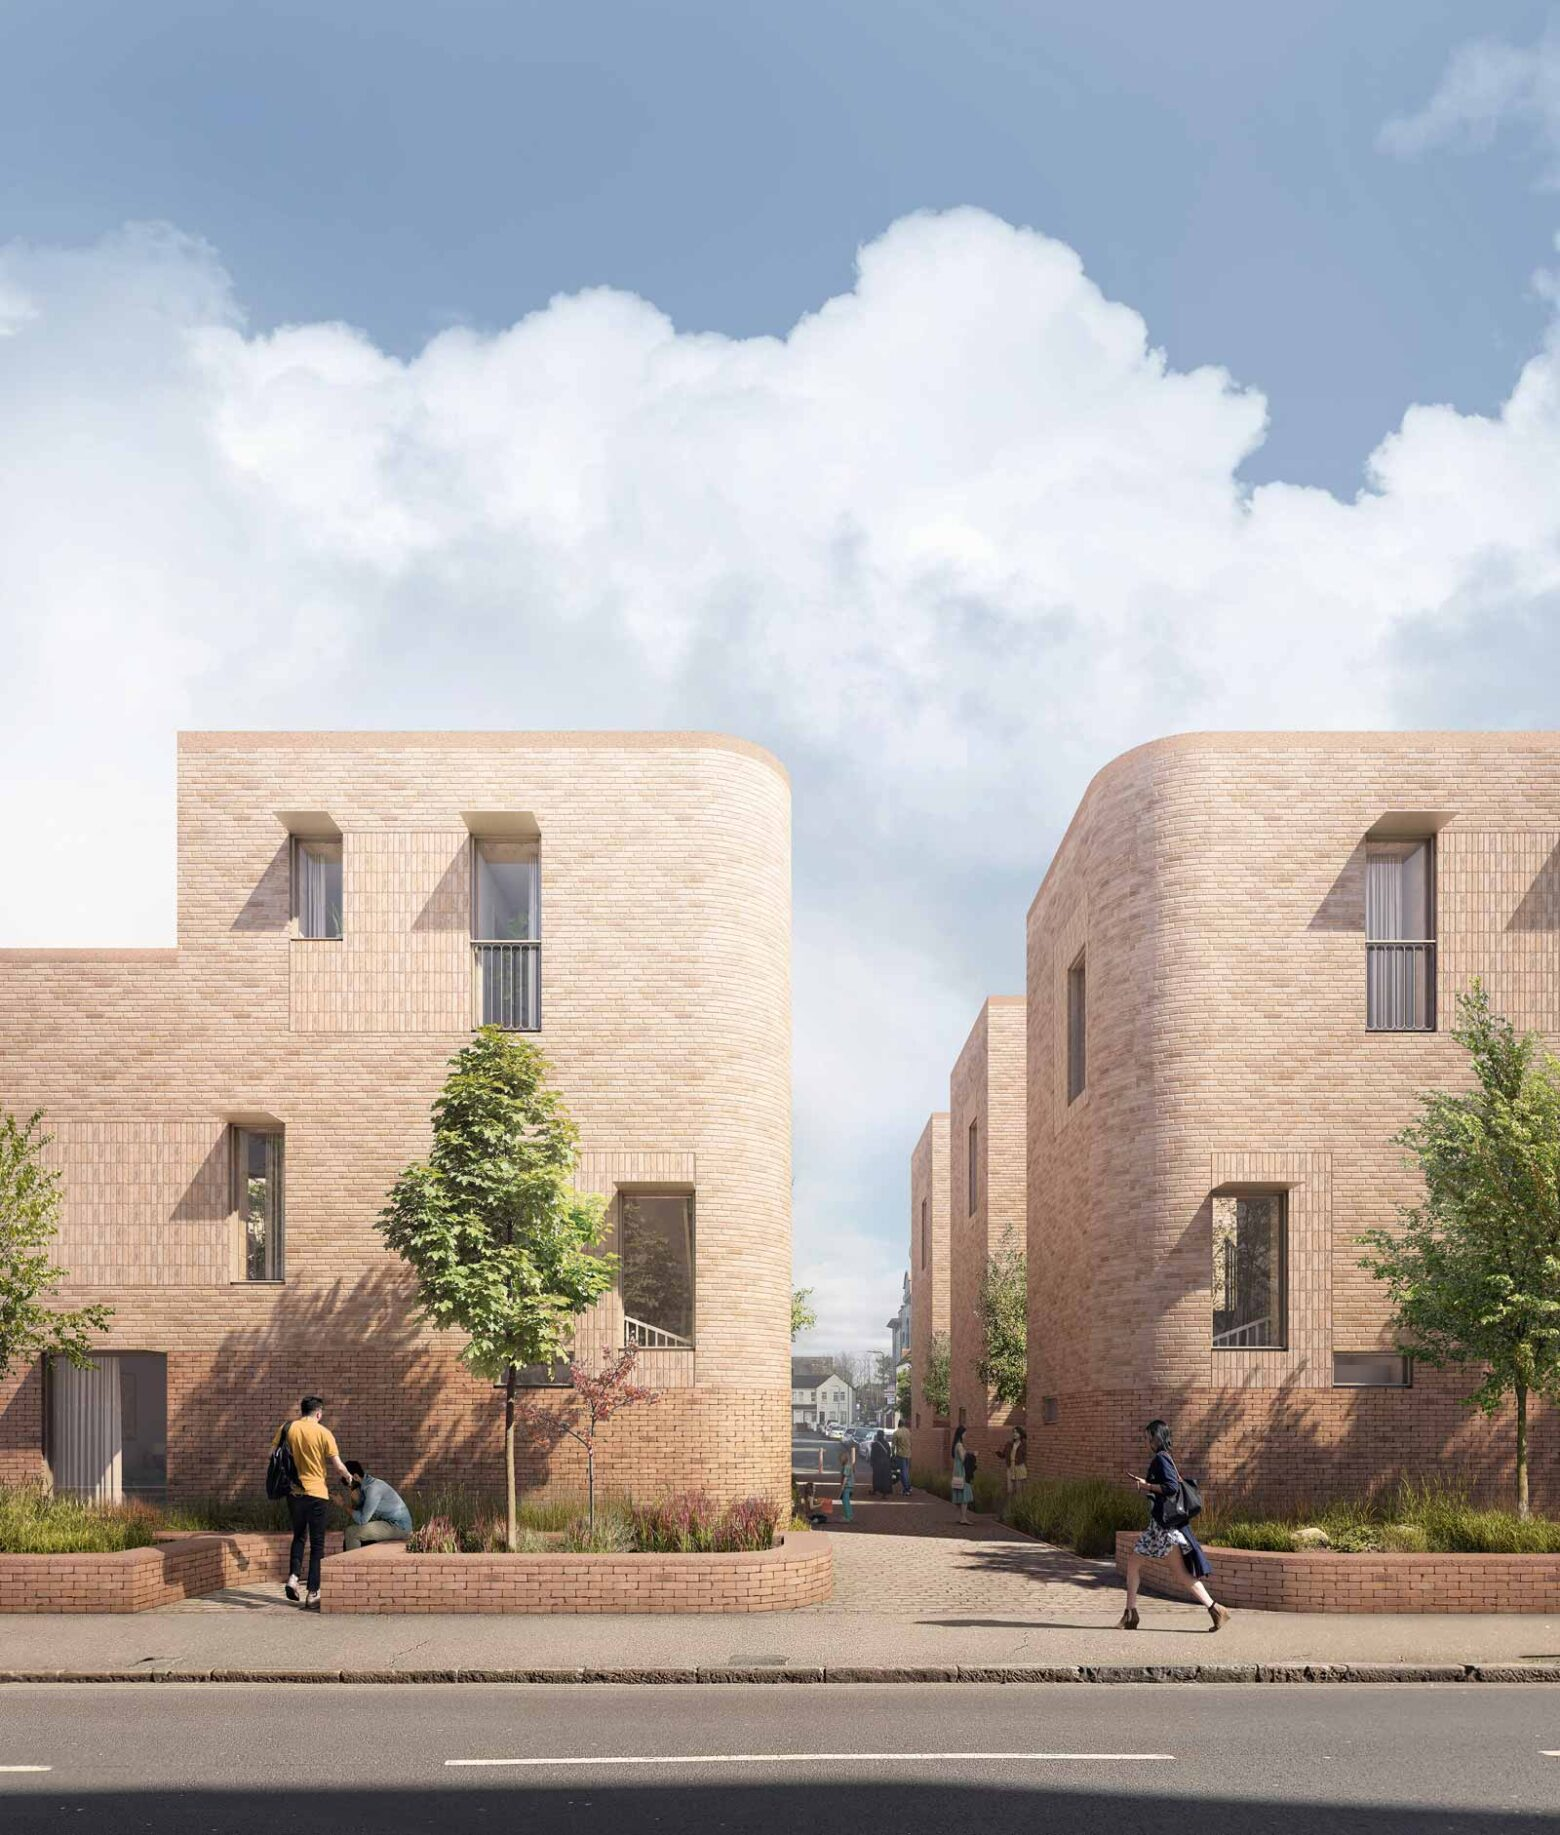 Consent granted for Passivhaus council homes